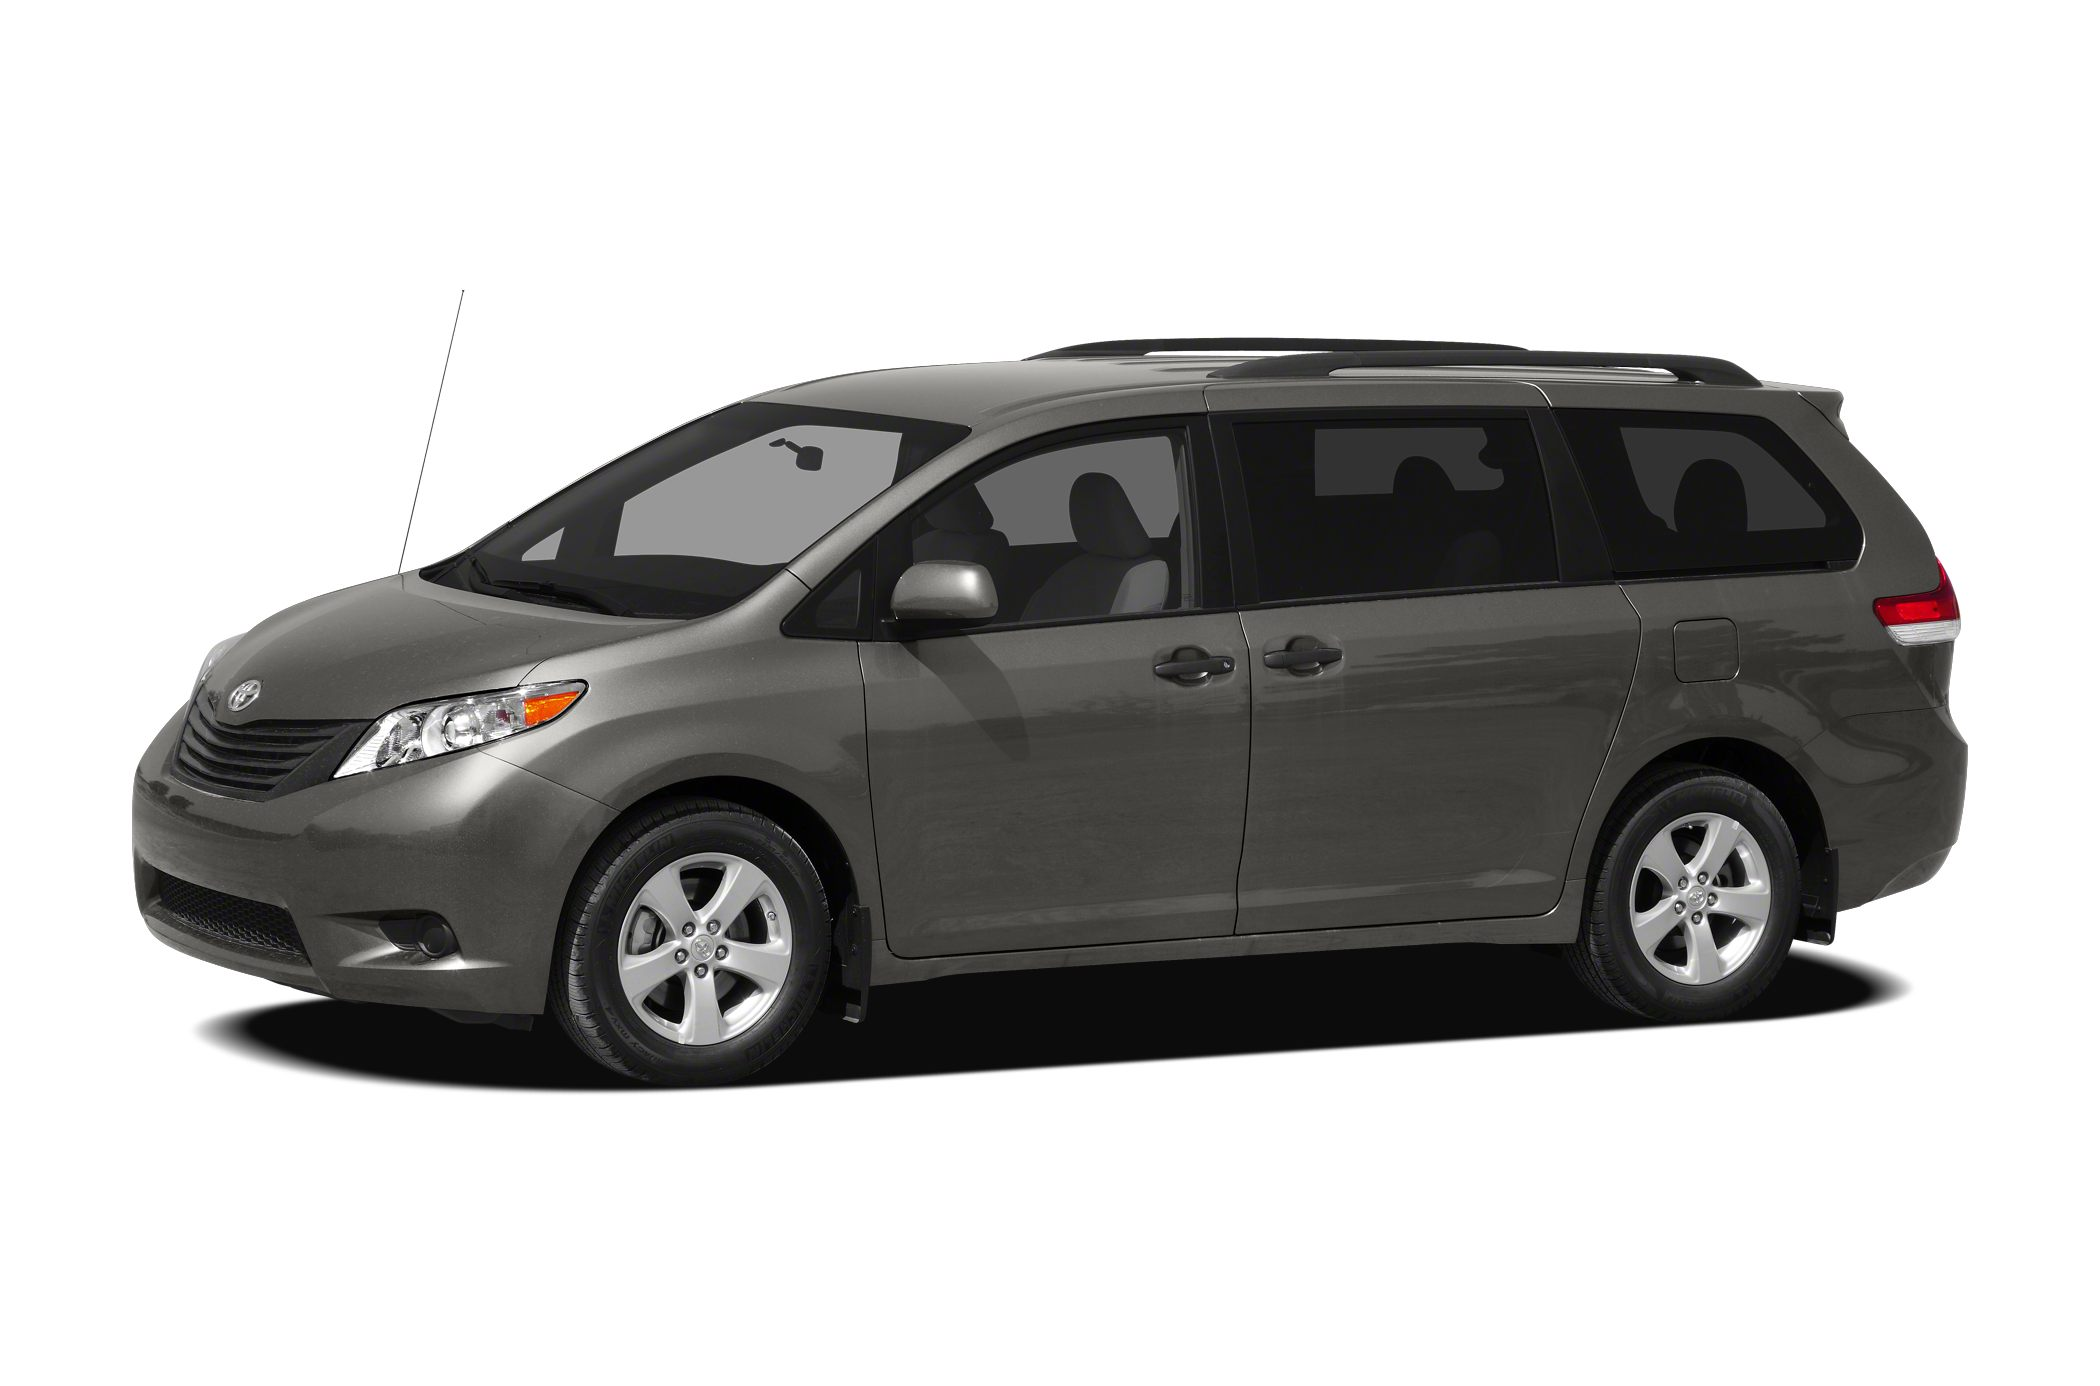 2011 Toyota Sienna XLE 400 below Kelley Blue Book FUEL EFFICIENT 24 MPG Hwy18 MPG City XLE tr